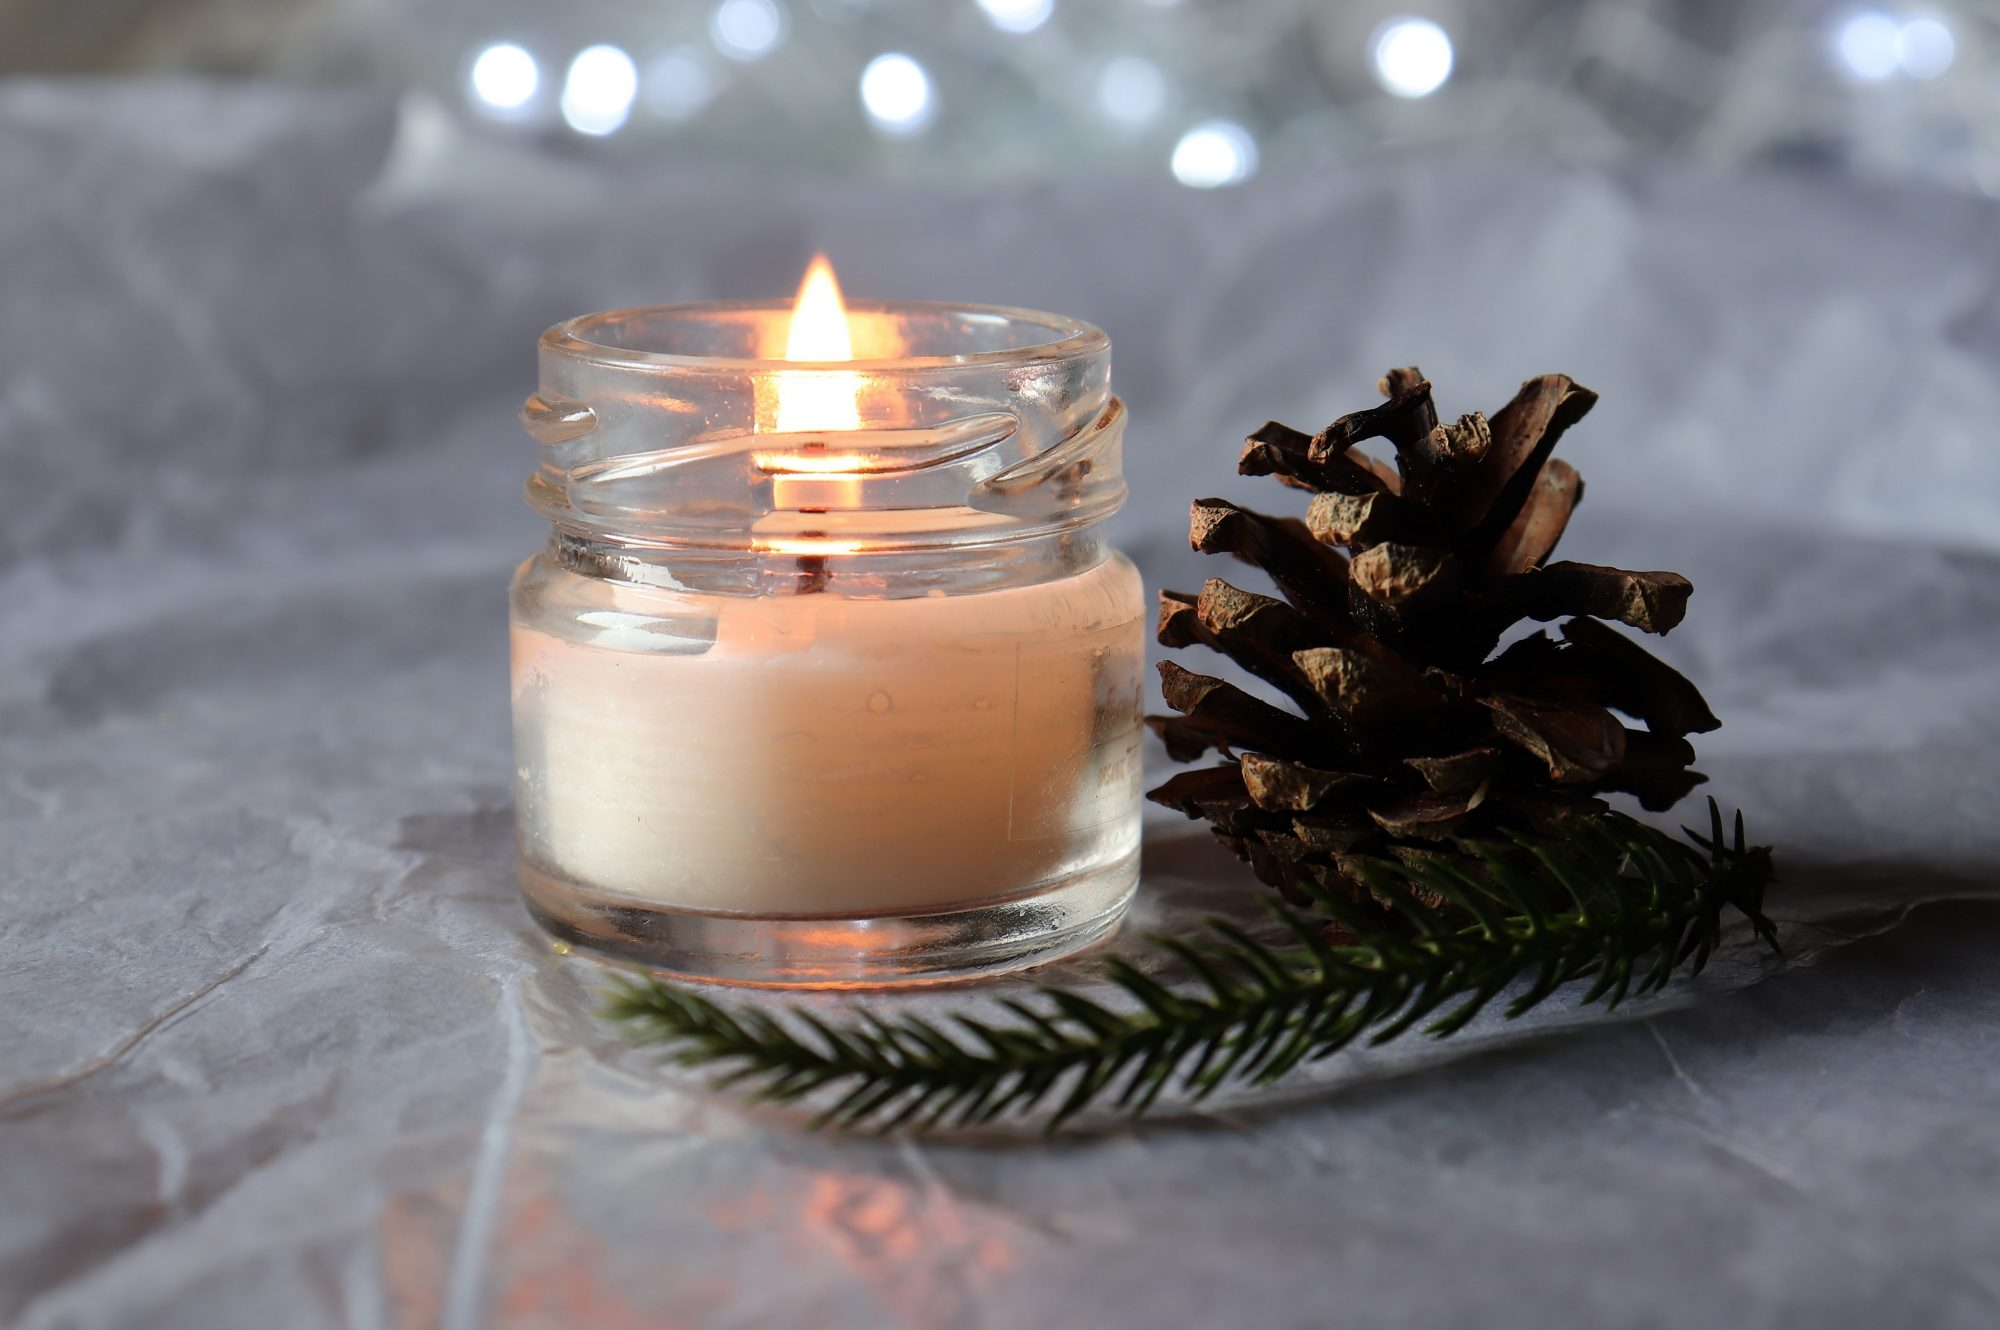 Hallmark Recalls 4,500 Candles After Reports of Glass Jars Shattering